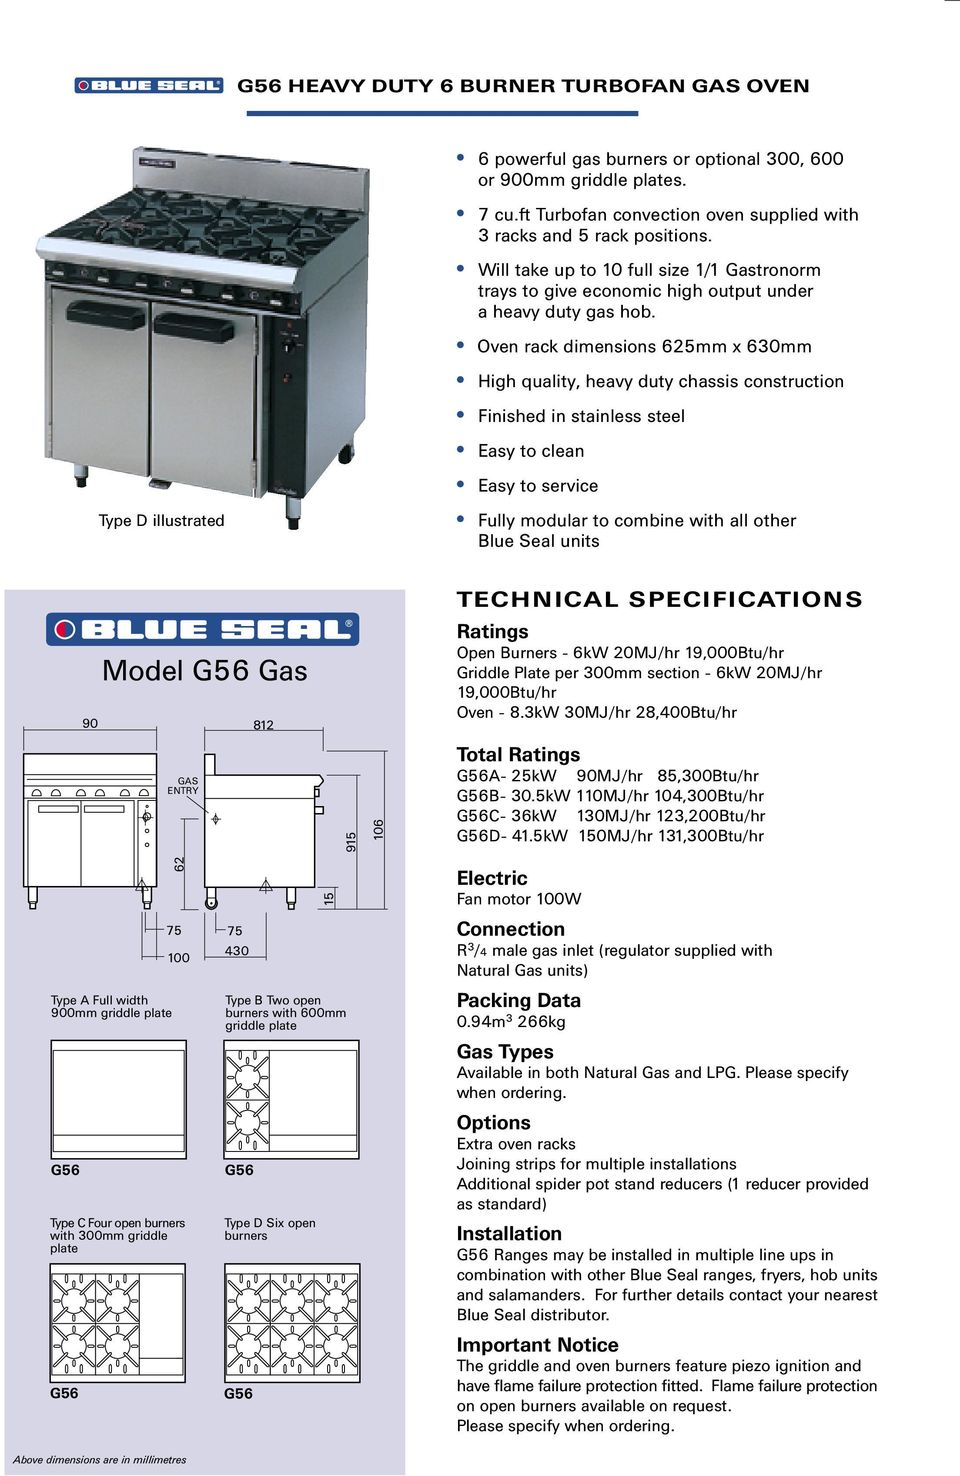 Oven rack dimensions 625mm x 630mm High quality, heavy duty chassis construction Fully modular to combine with all other Blue Seal units 90 Model Gas Open Burners - 6kW 20MJ/hr 19,000Btu/hr Griddle